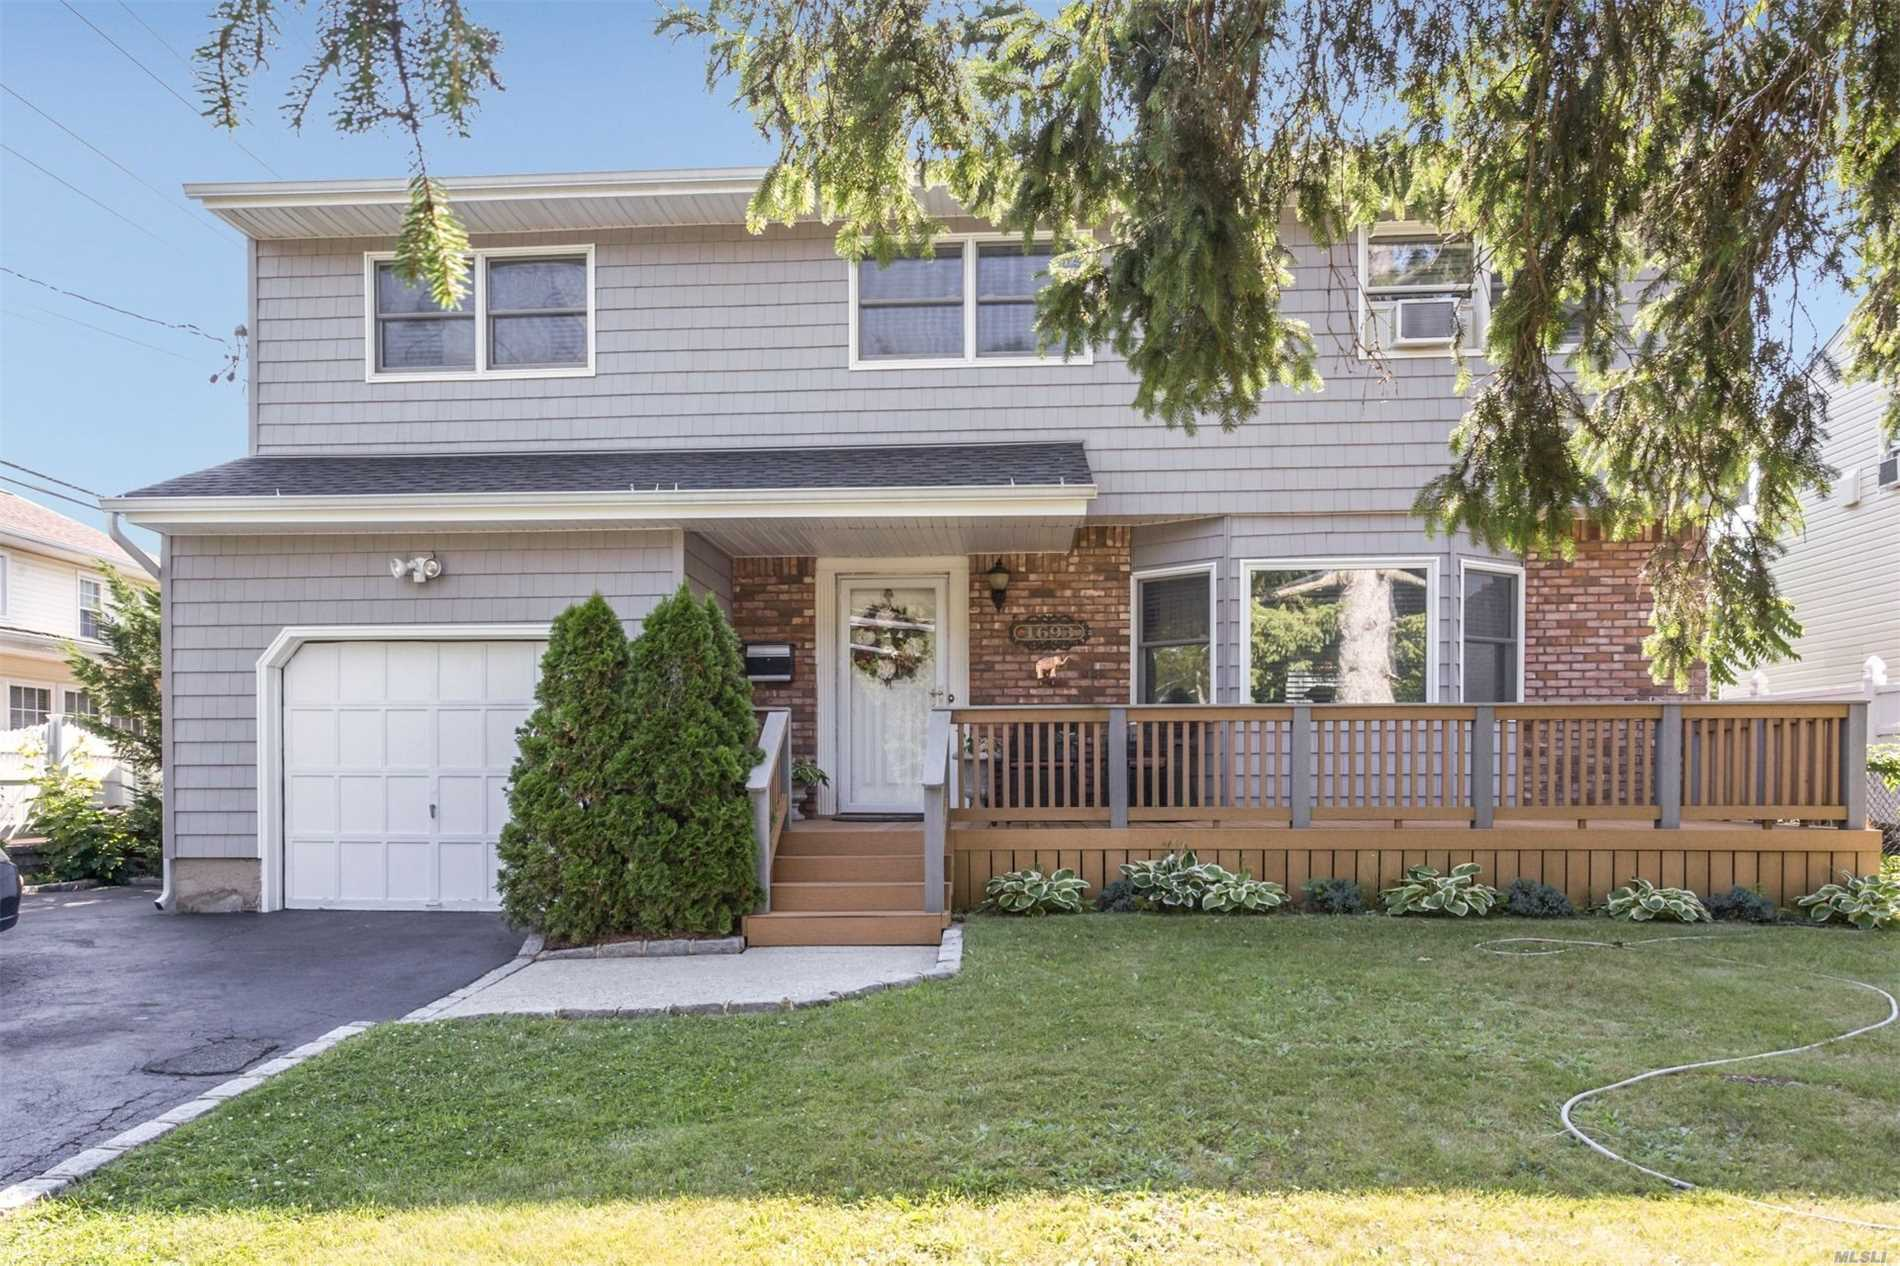 This Gorgeous Colonial In Wantagh Woods Features- New Large Eat In Kitchen , New Bathrooms, 4 Bedrooms , Master Bedroom (19'7 X 12') With A New Master Bath - Other Bedroom Dimensions-(16'3X12'3) (12'2X12') ( 13'8X 10'10) - Large Formal Dining Room -Large Den Family Room - Formal Living Room With Fireplace, Finished Basement -New Roof, Siding -Hardwood Floors Throughout, Over Sized Property- 1.5 Car Garage. Solar Panels -